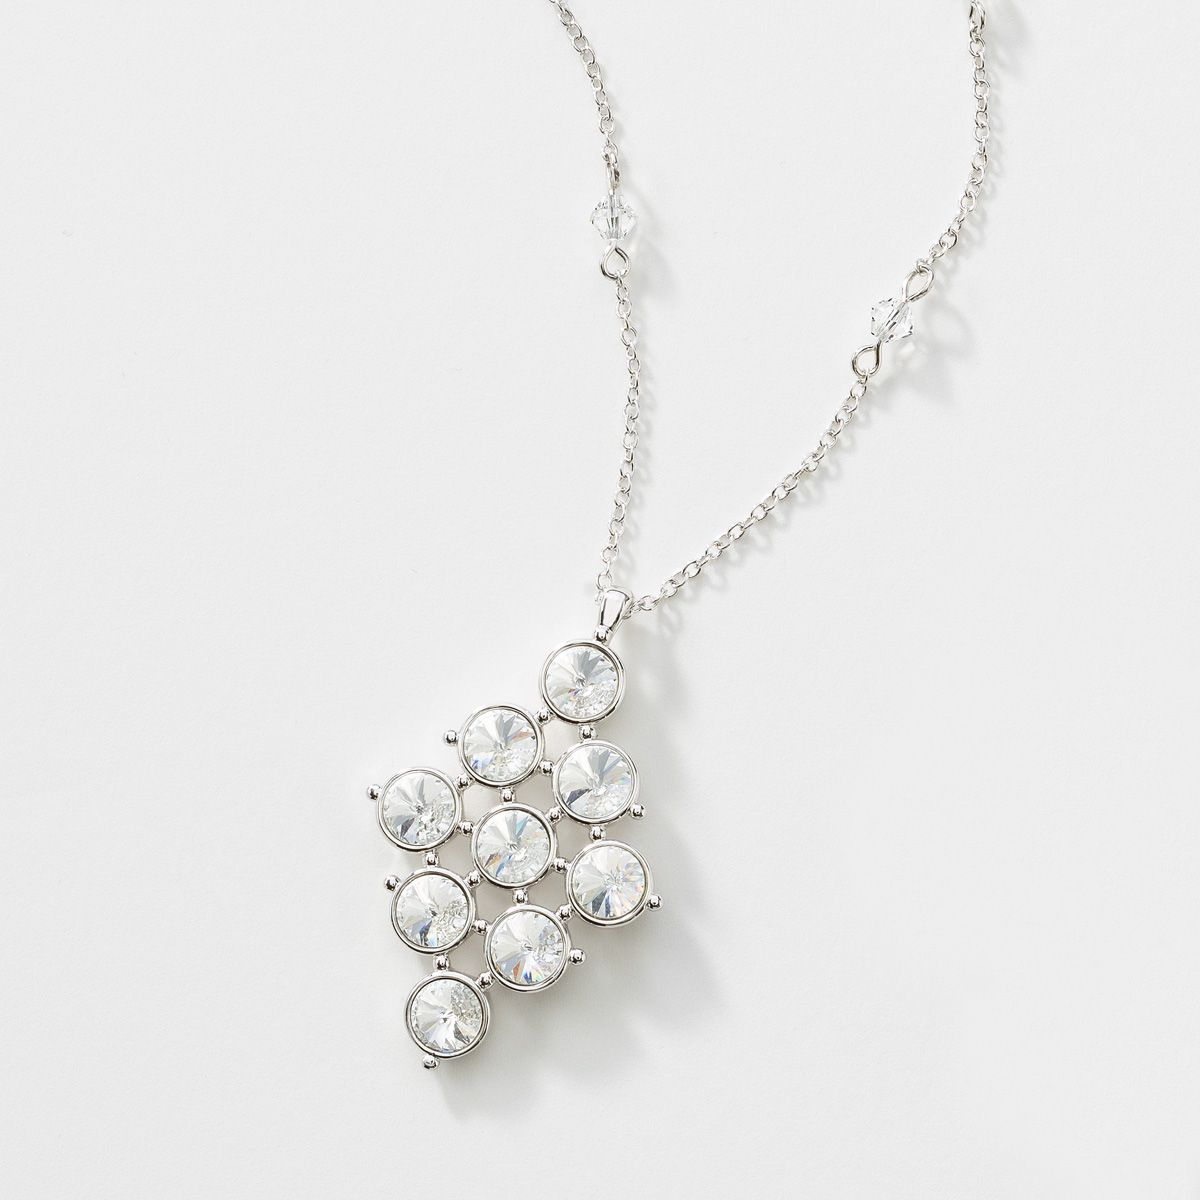 """Swarovski Crystal Jewelry  click picture to visit website Aria Pendant Item 3924NF Crystal set in rhodium plating; 15"""" to 18"""". $79.00 Alison Manaher's Personal Website"""